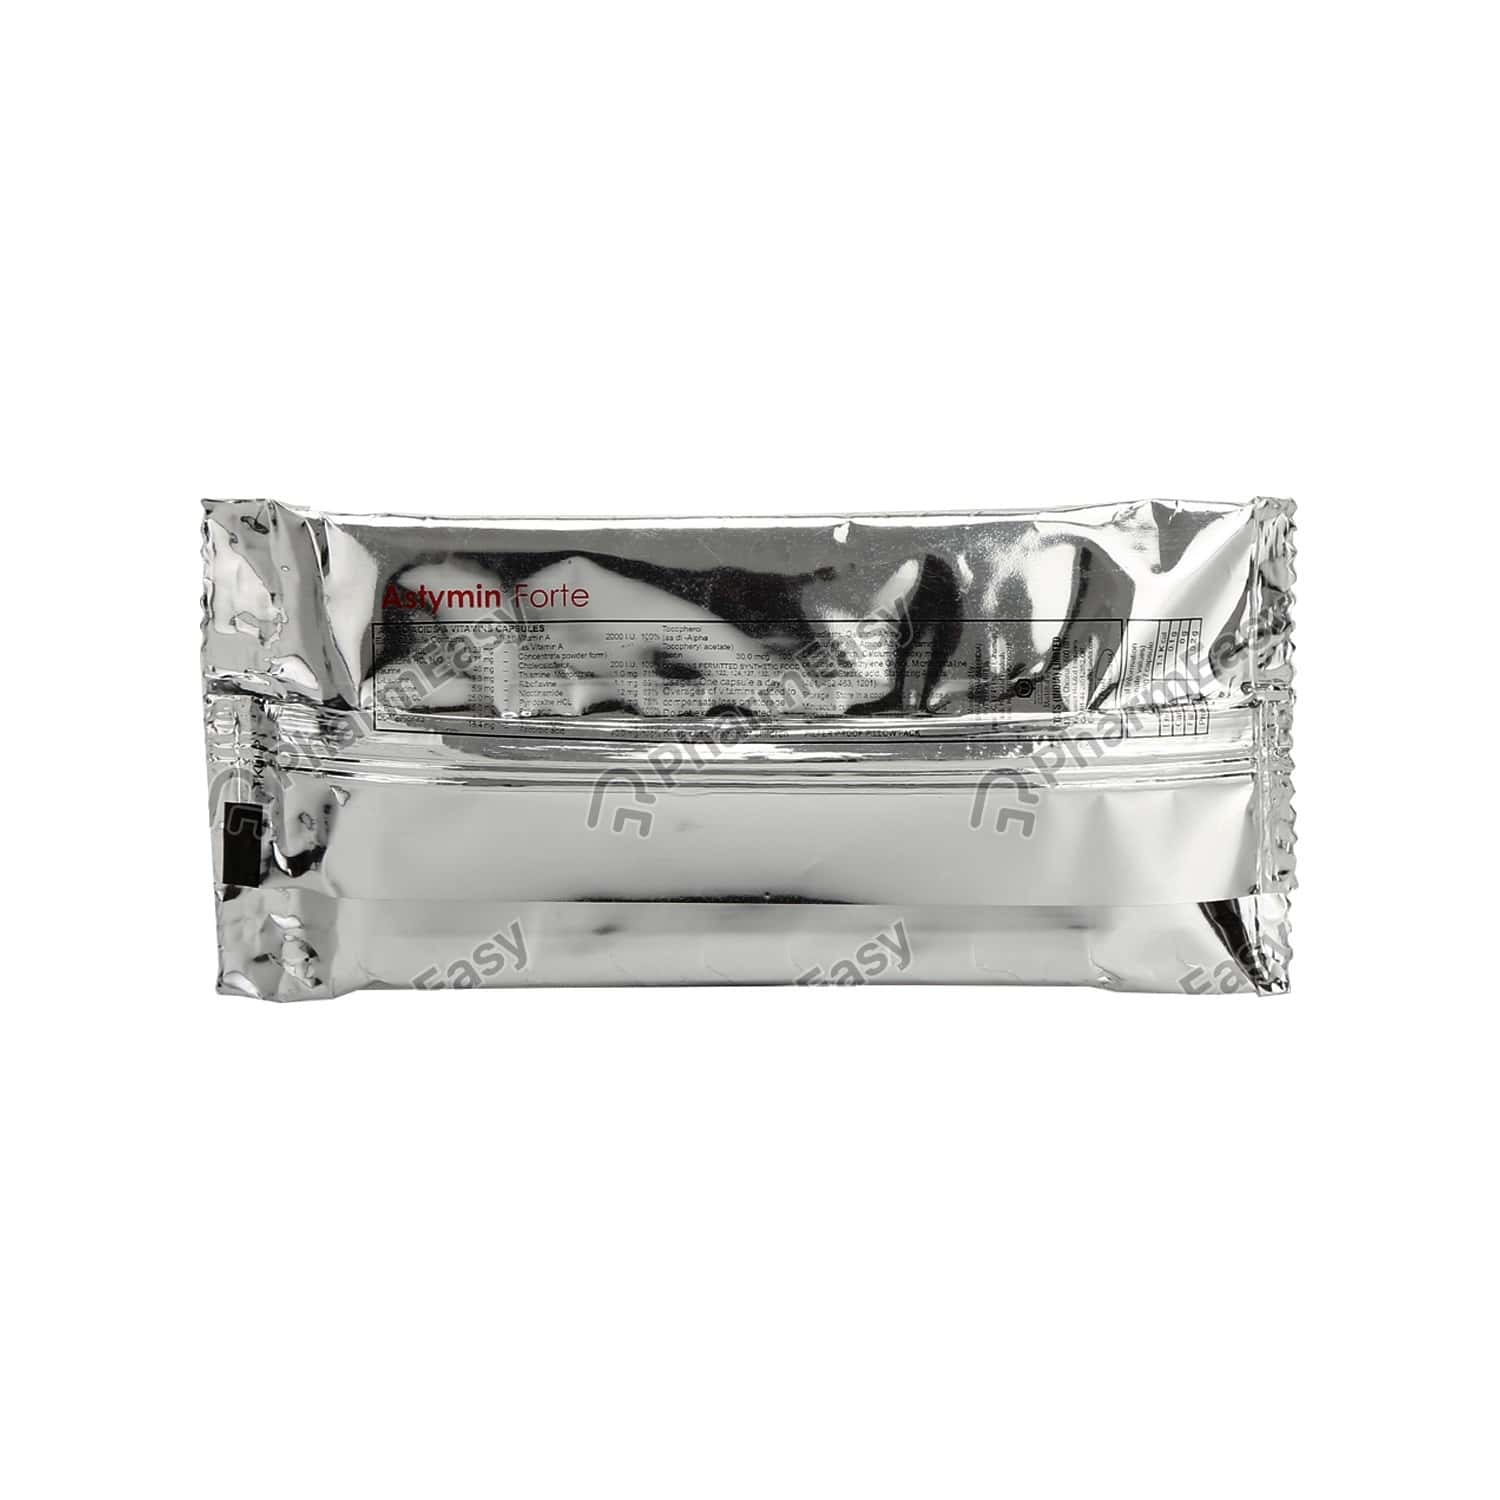 Astymin Forte Strip Of 20 Capsules